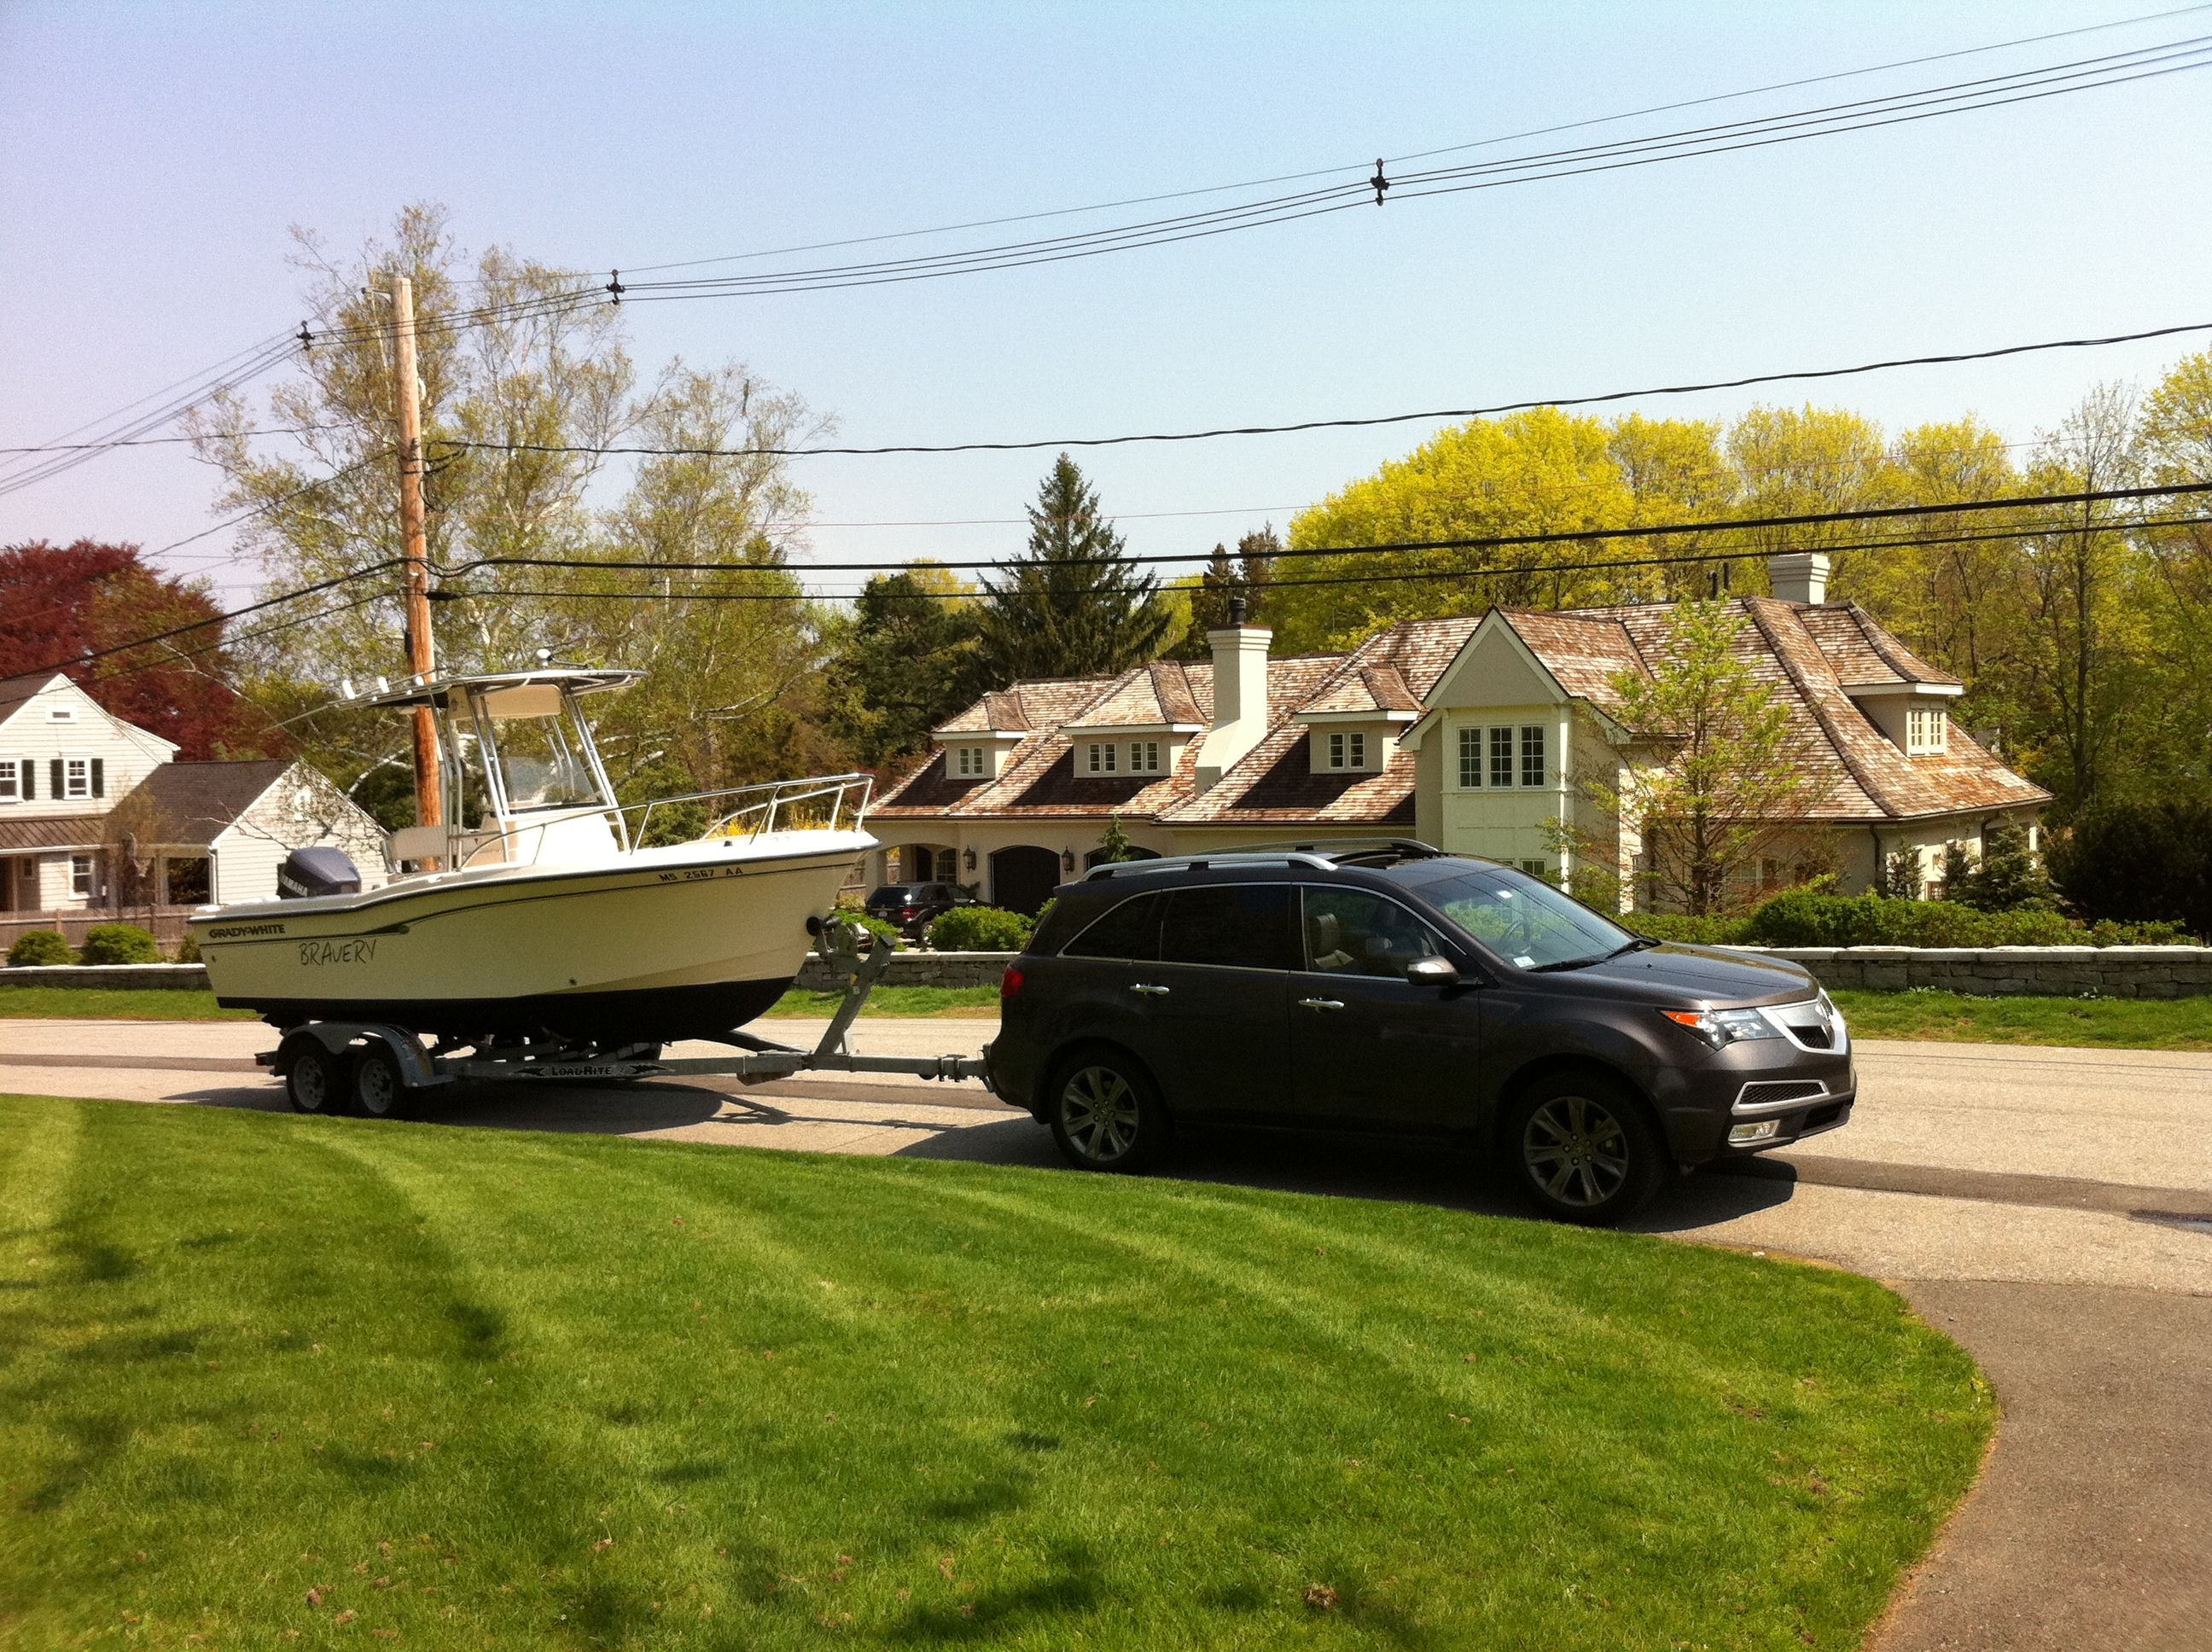 D Mdx Towing Boat